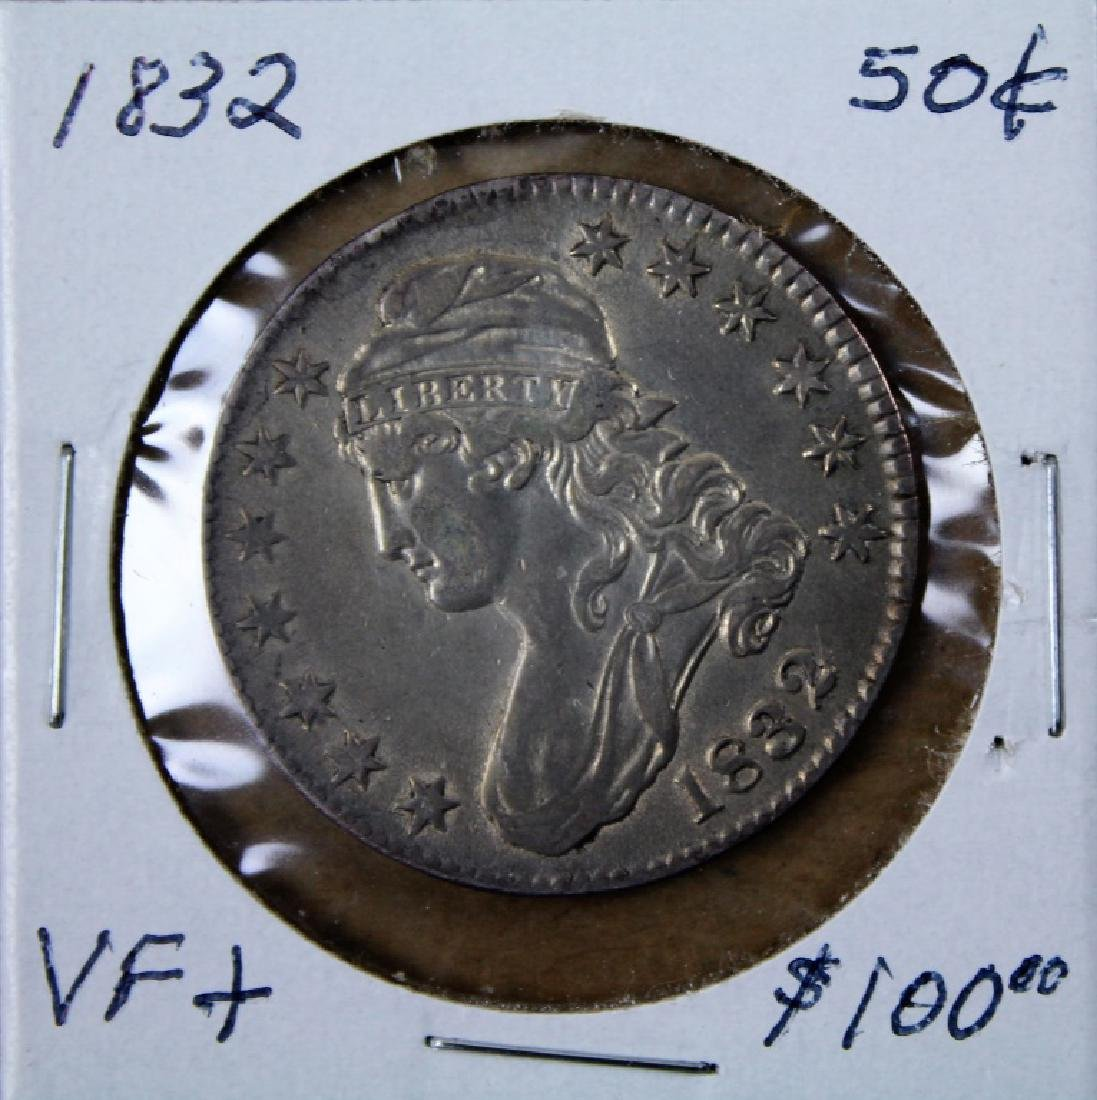 1832 U S Liberty  50 cent piece